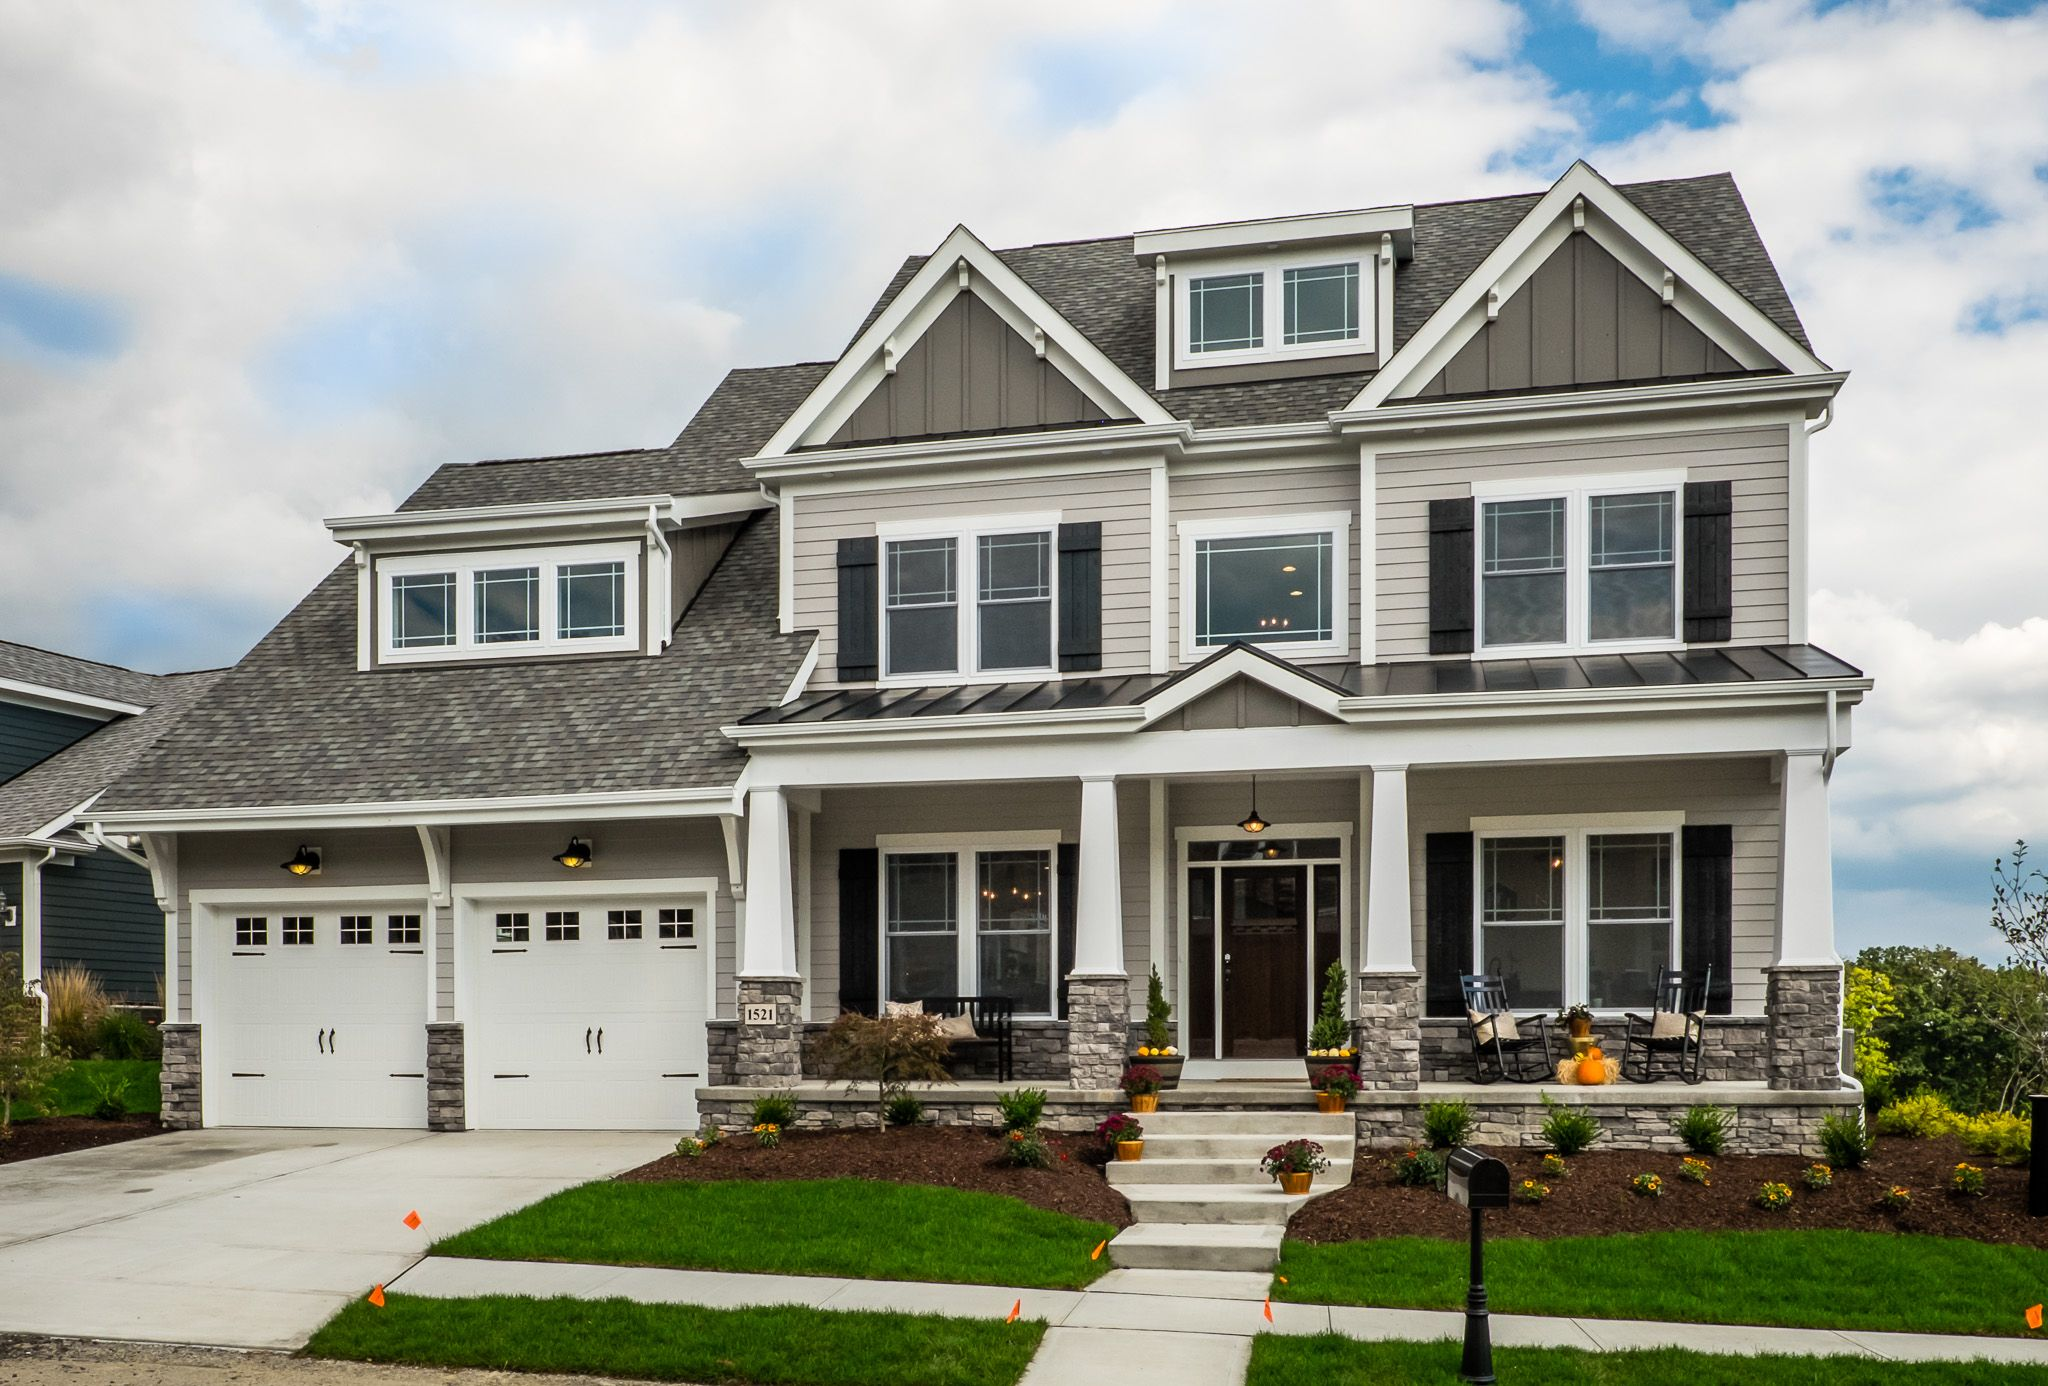 8 Infinity Custom Homes Communities In Cranberry Township Pa Newhomesource